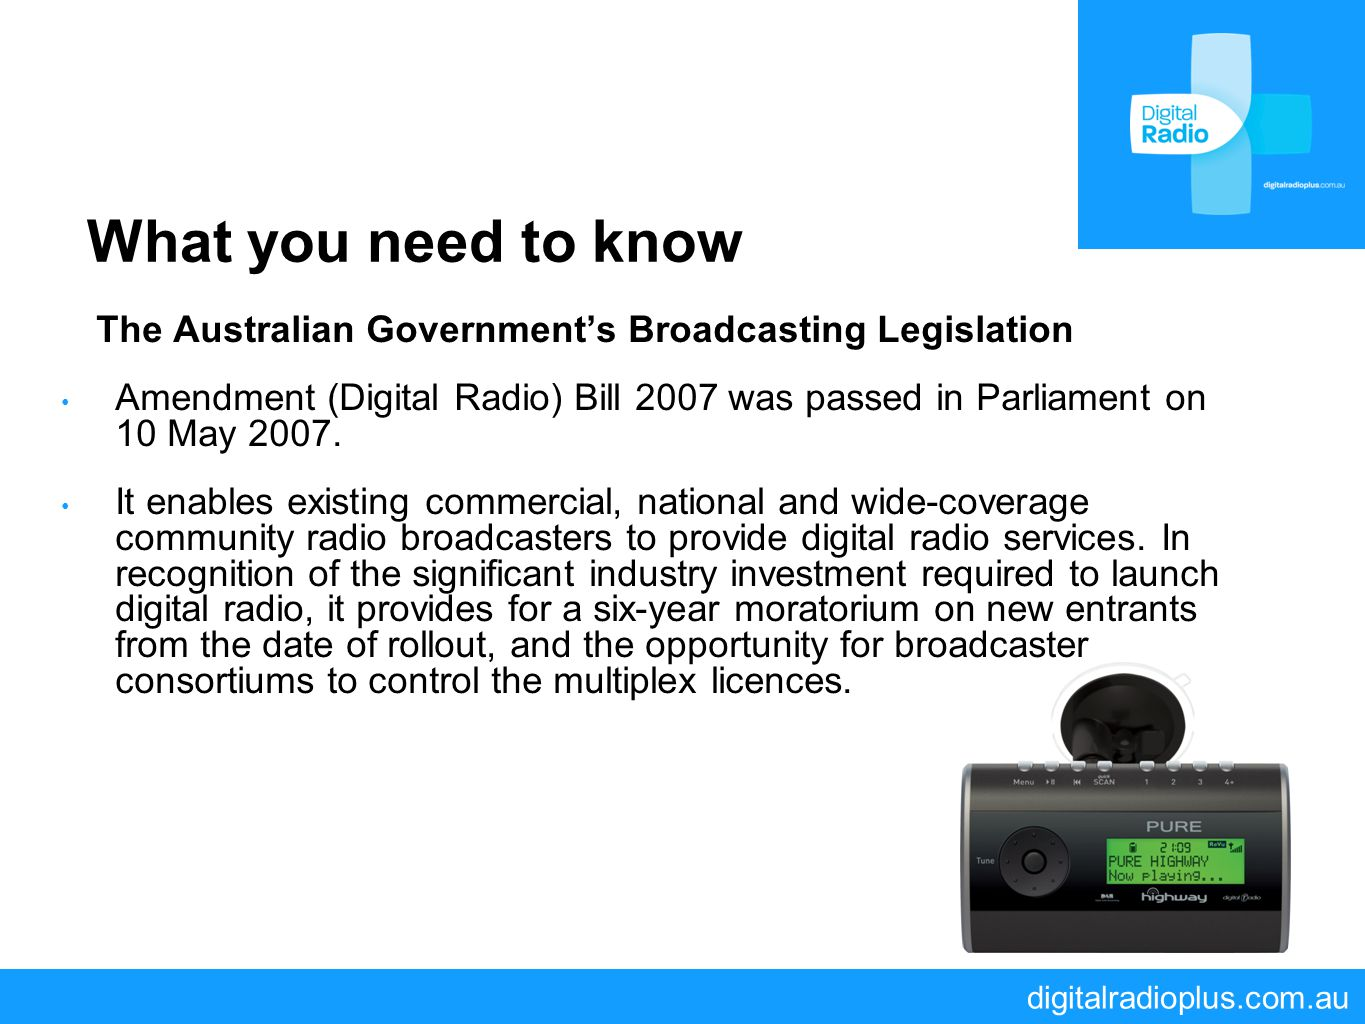 digitalradioplus.com.au What you need to know The Australian Government's Broadcasting Legislation Amendment (Digital Radio) Bill 2007 was passed in P